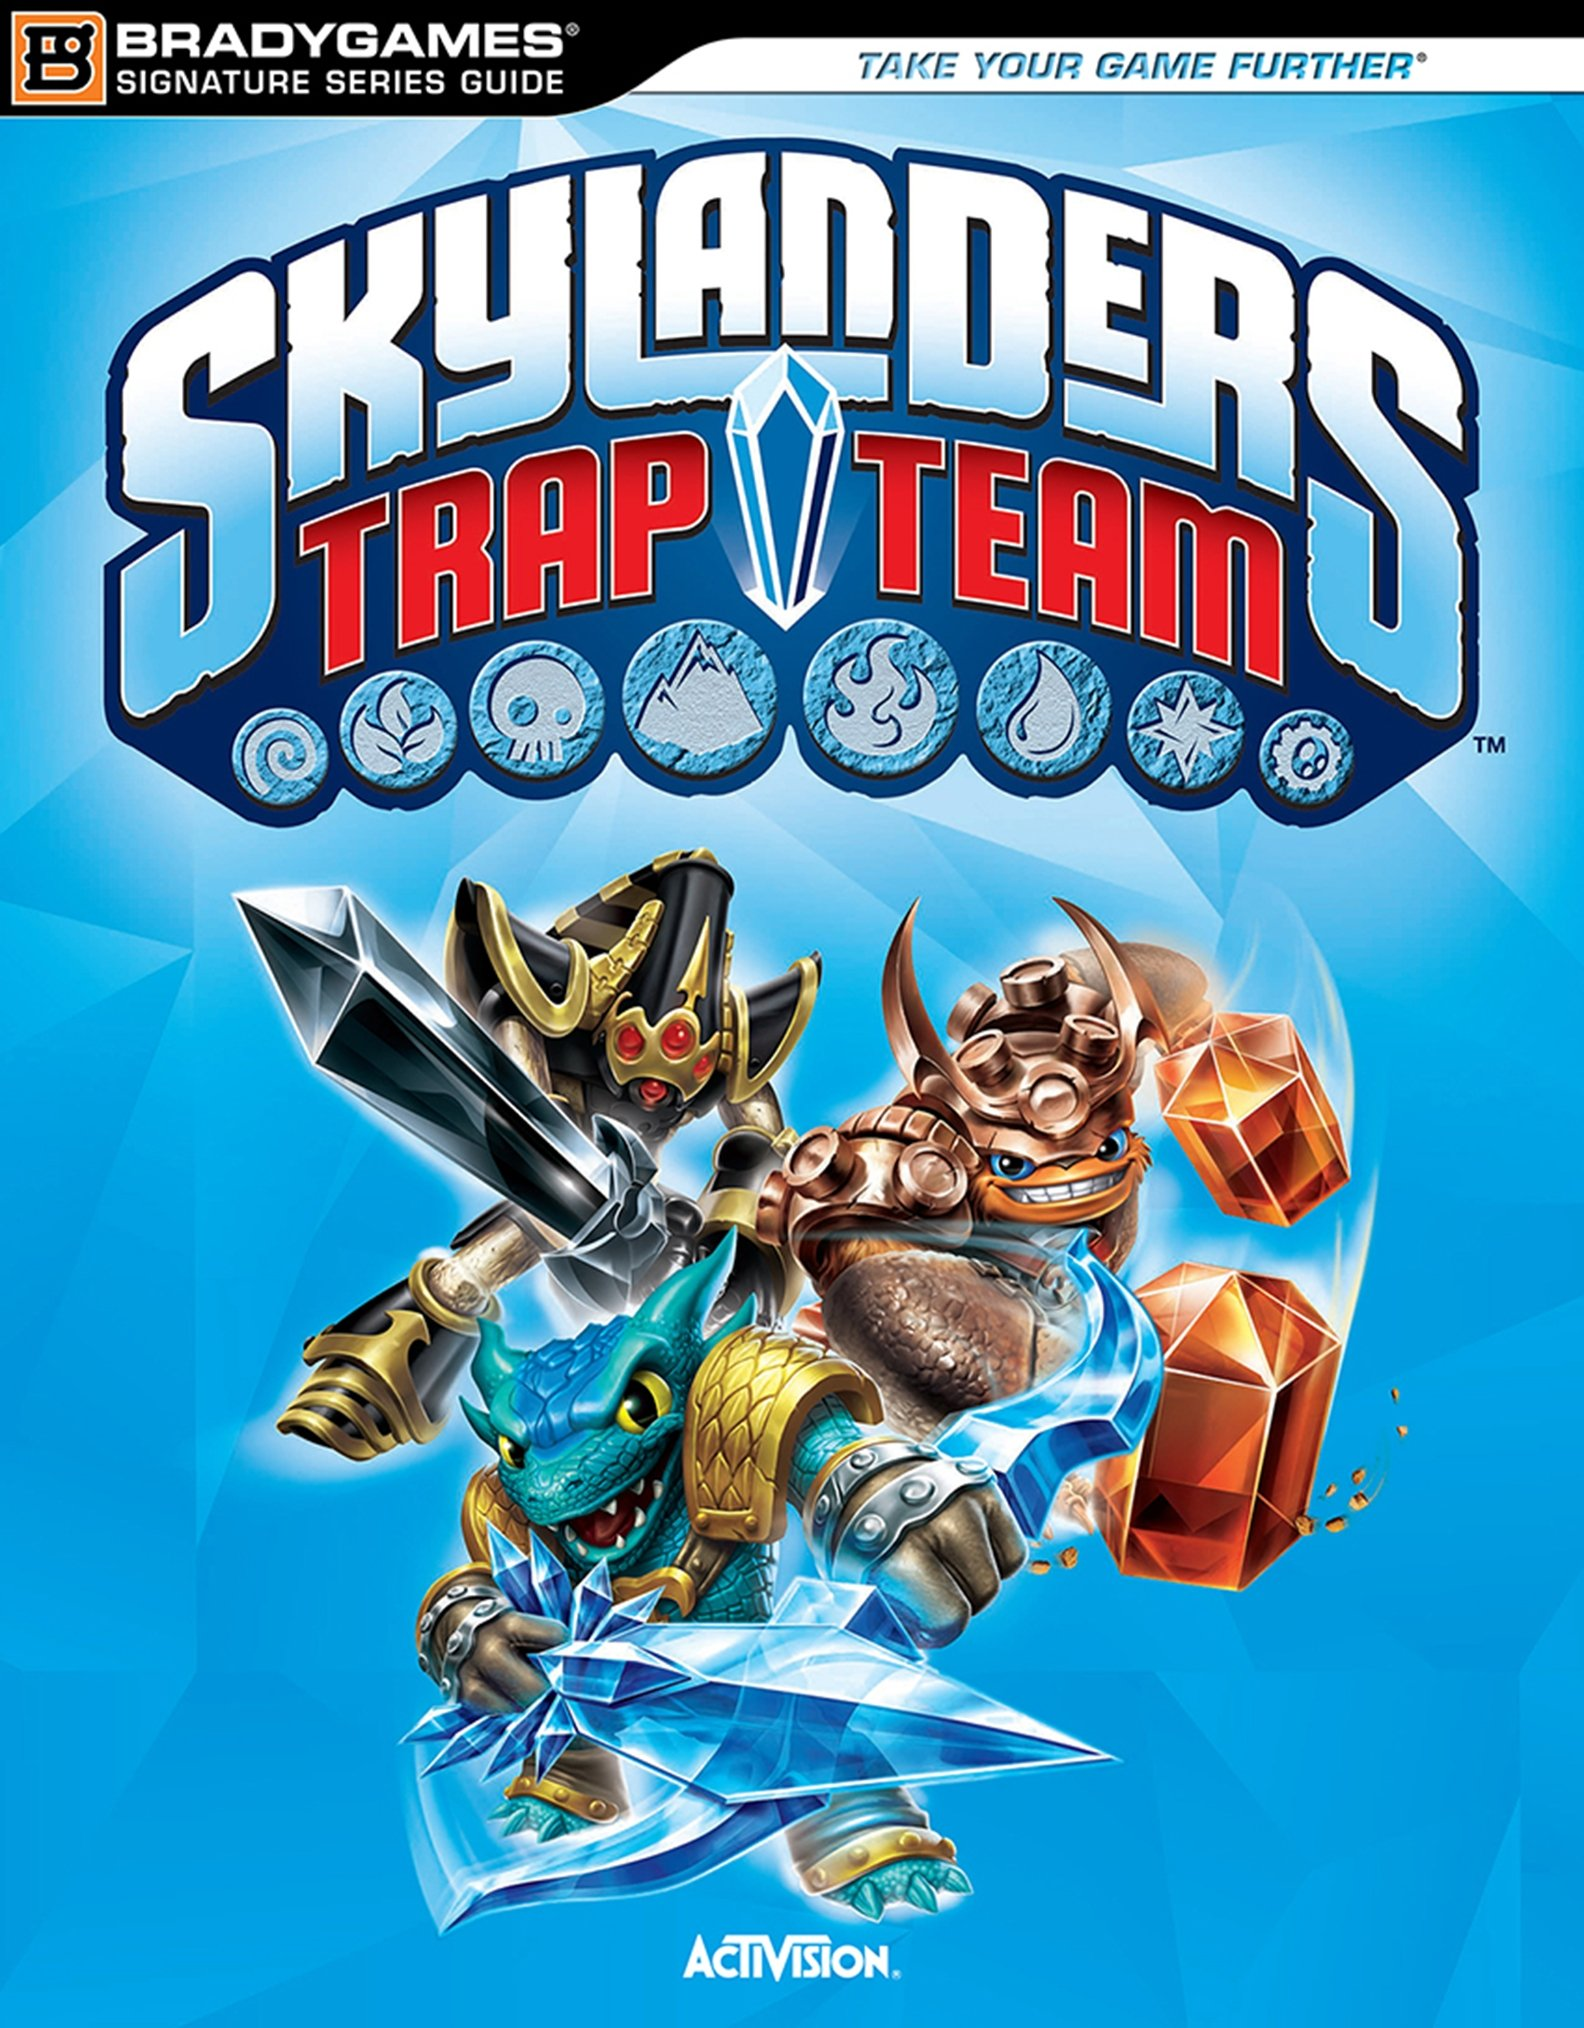 Image OfSkylanders Trap Team Signature Series Strategy Guide (Bradygames Signature Guides) (English Edition)